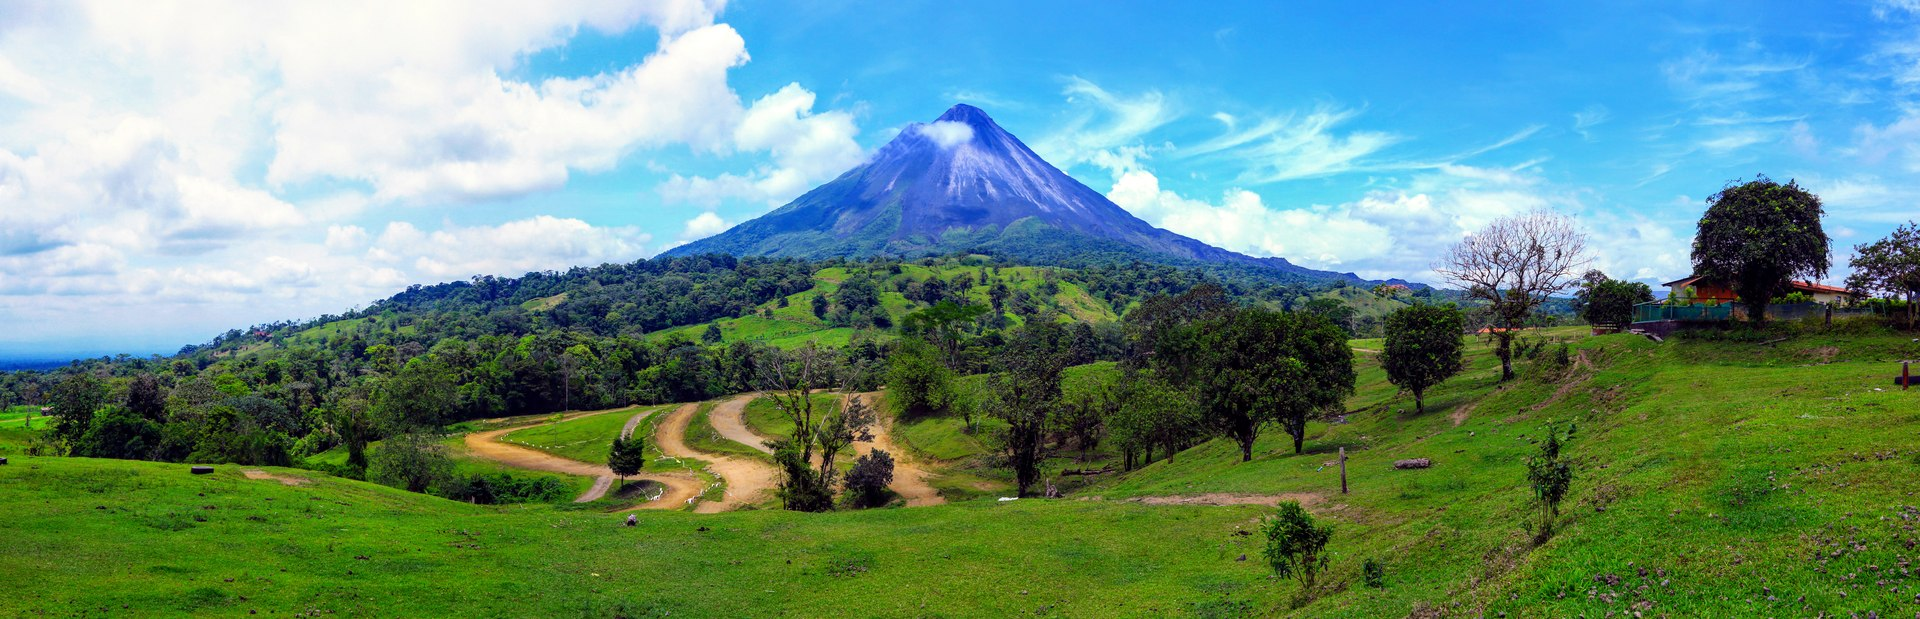 Things to see & do inCentral America